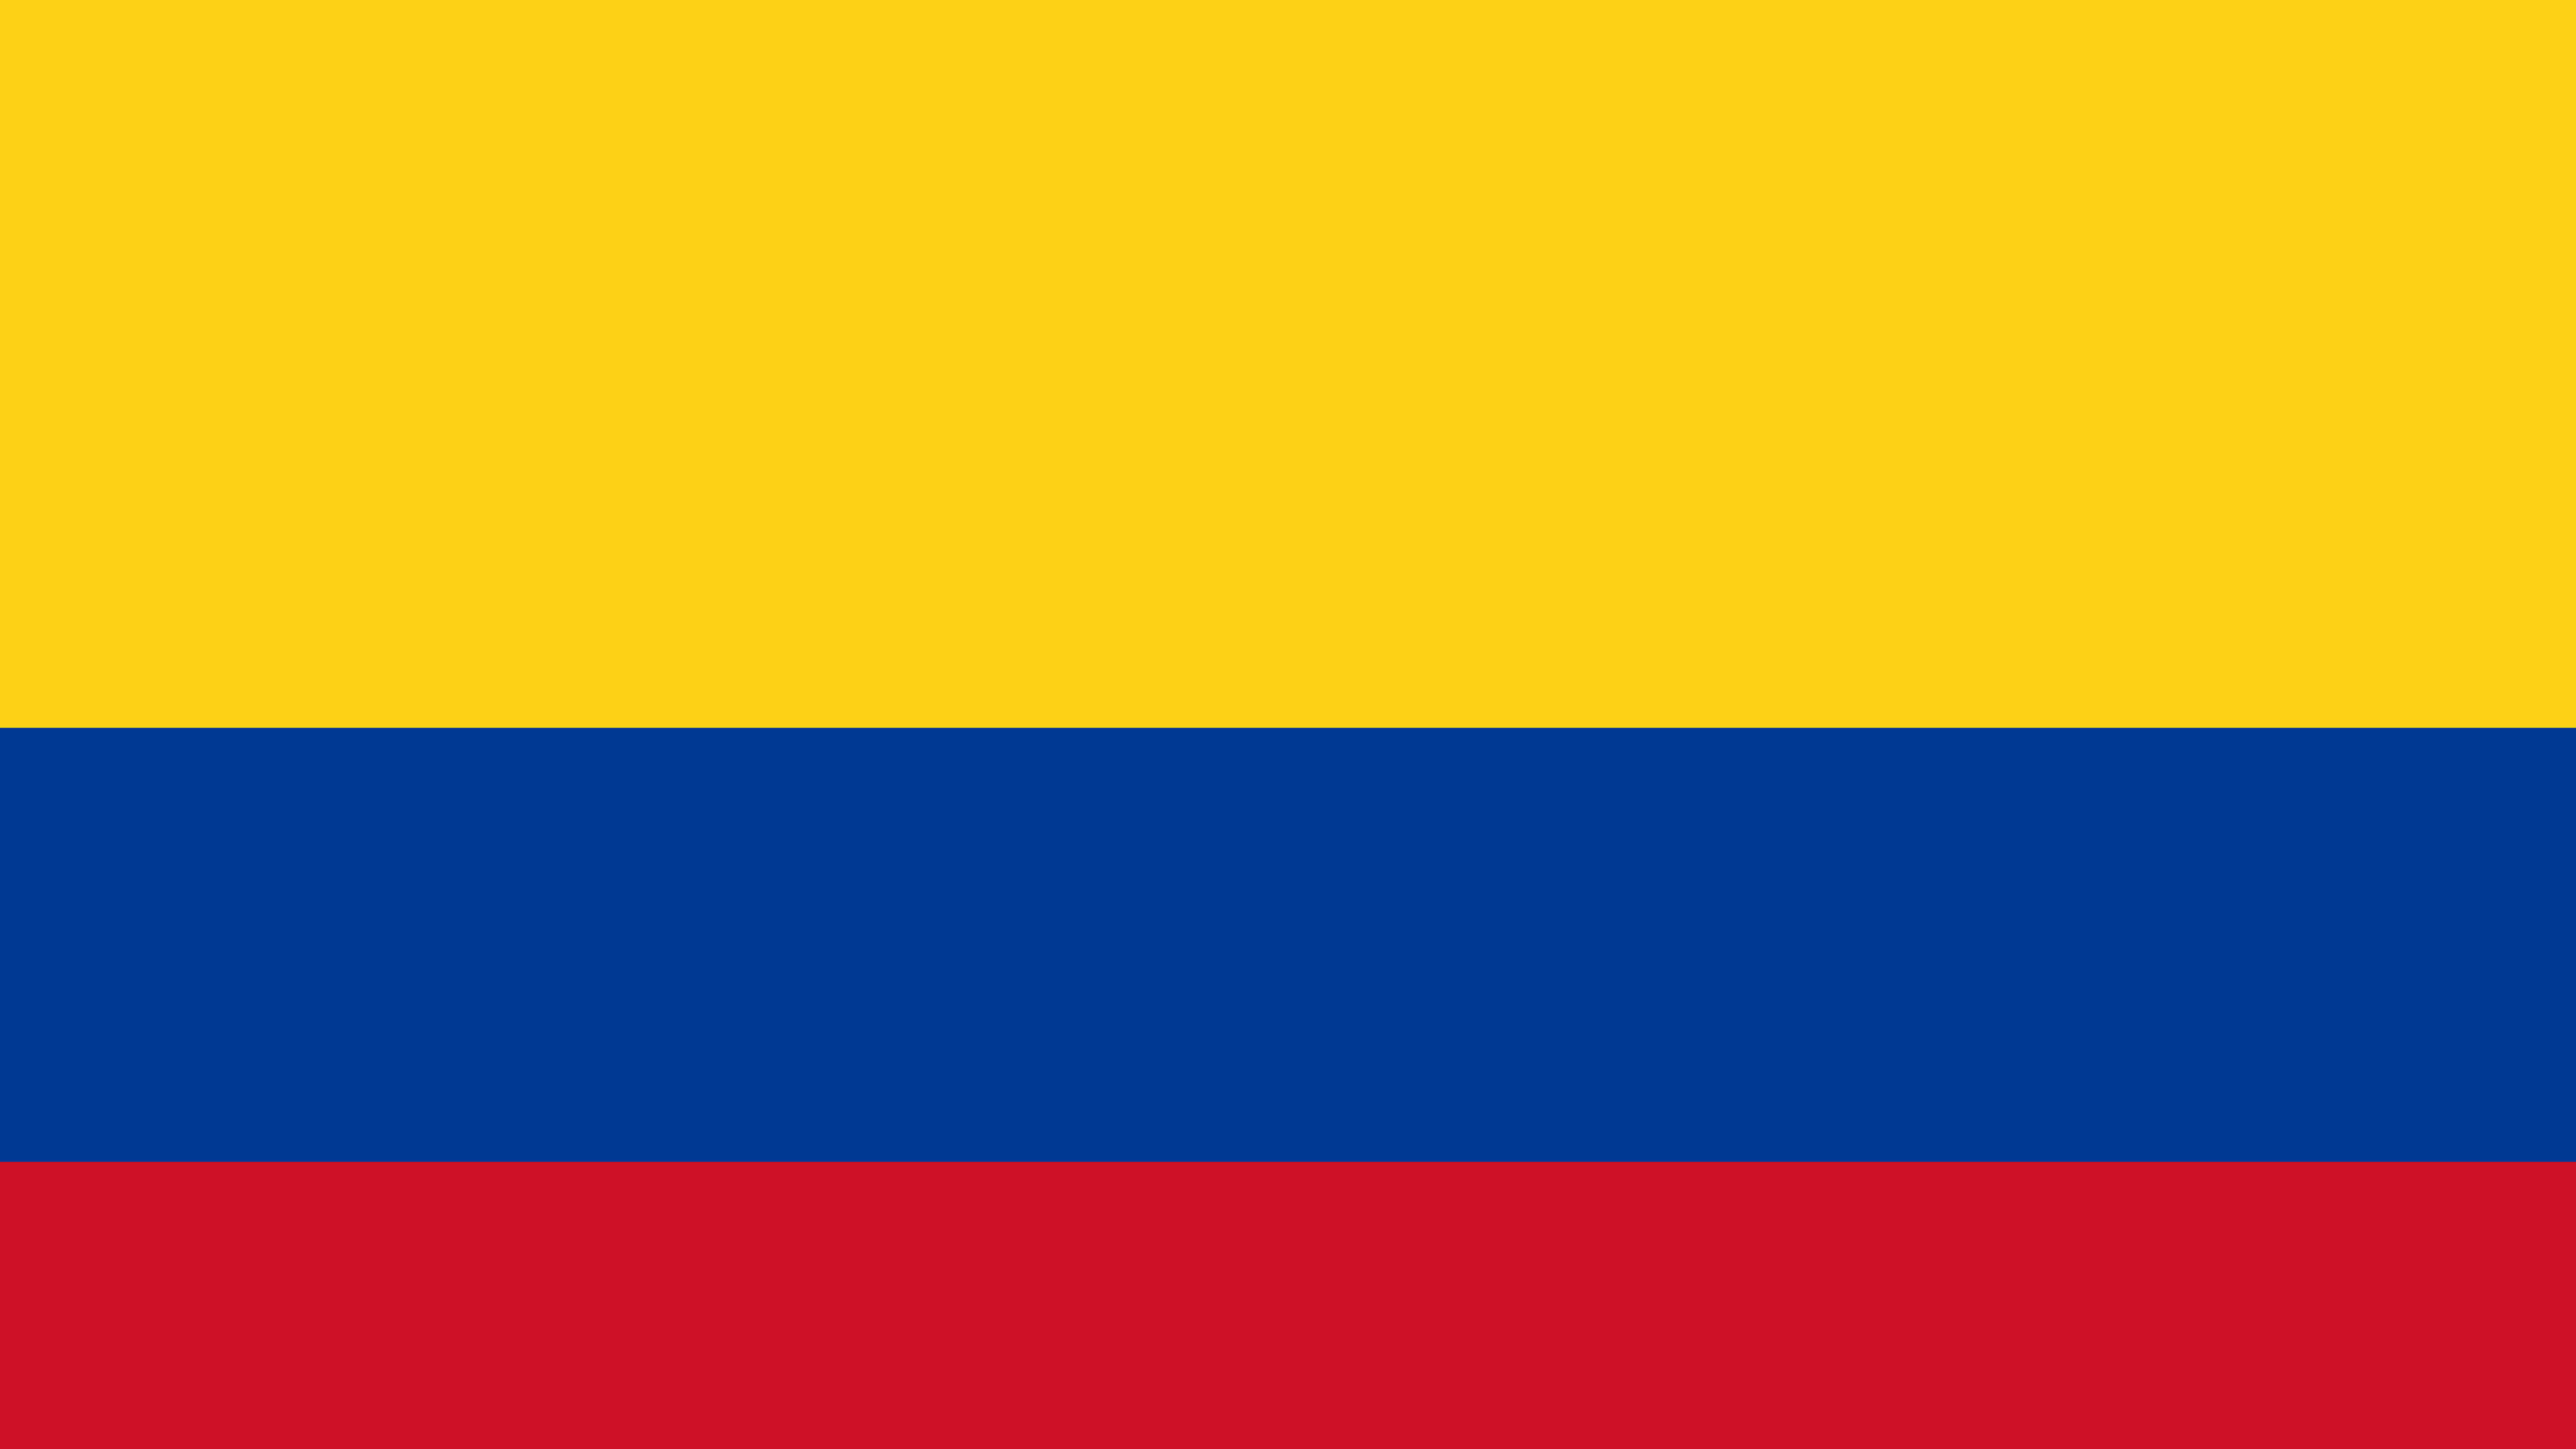 colombia flag uhd 4k wallpaper